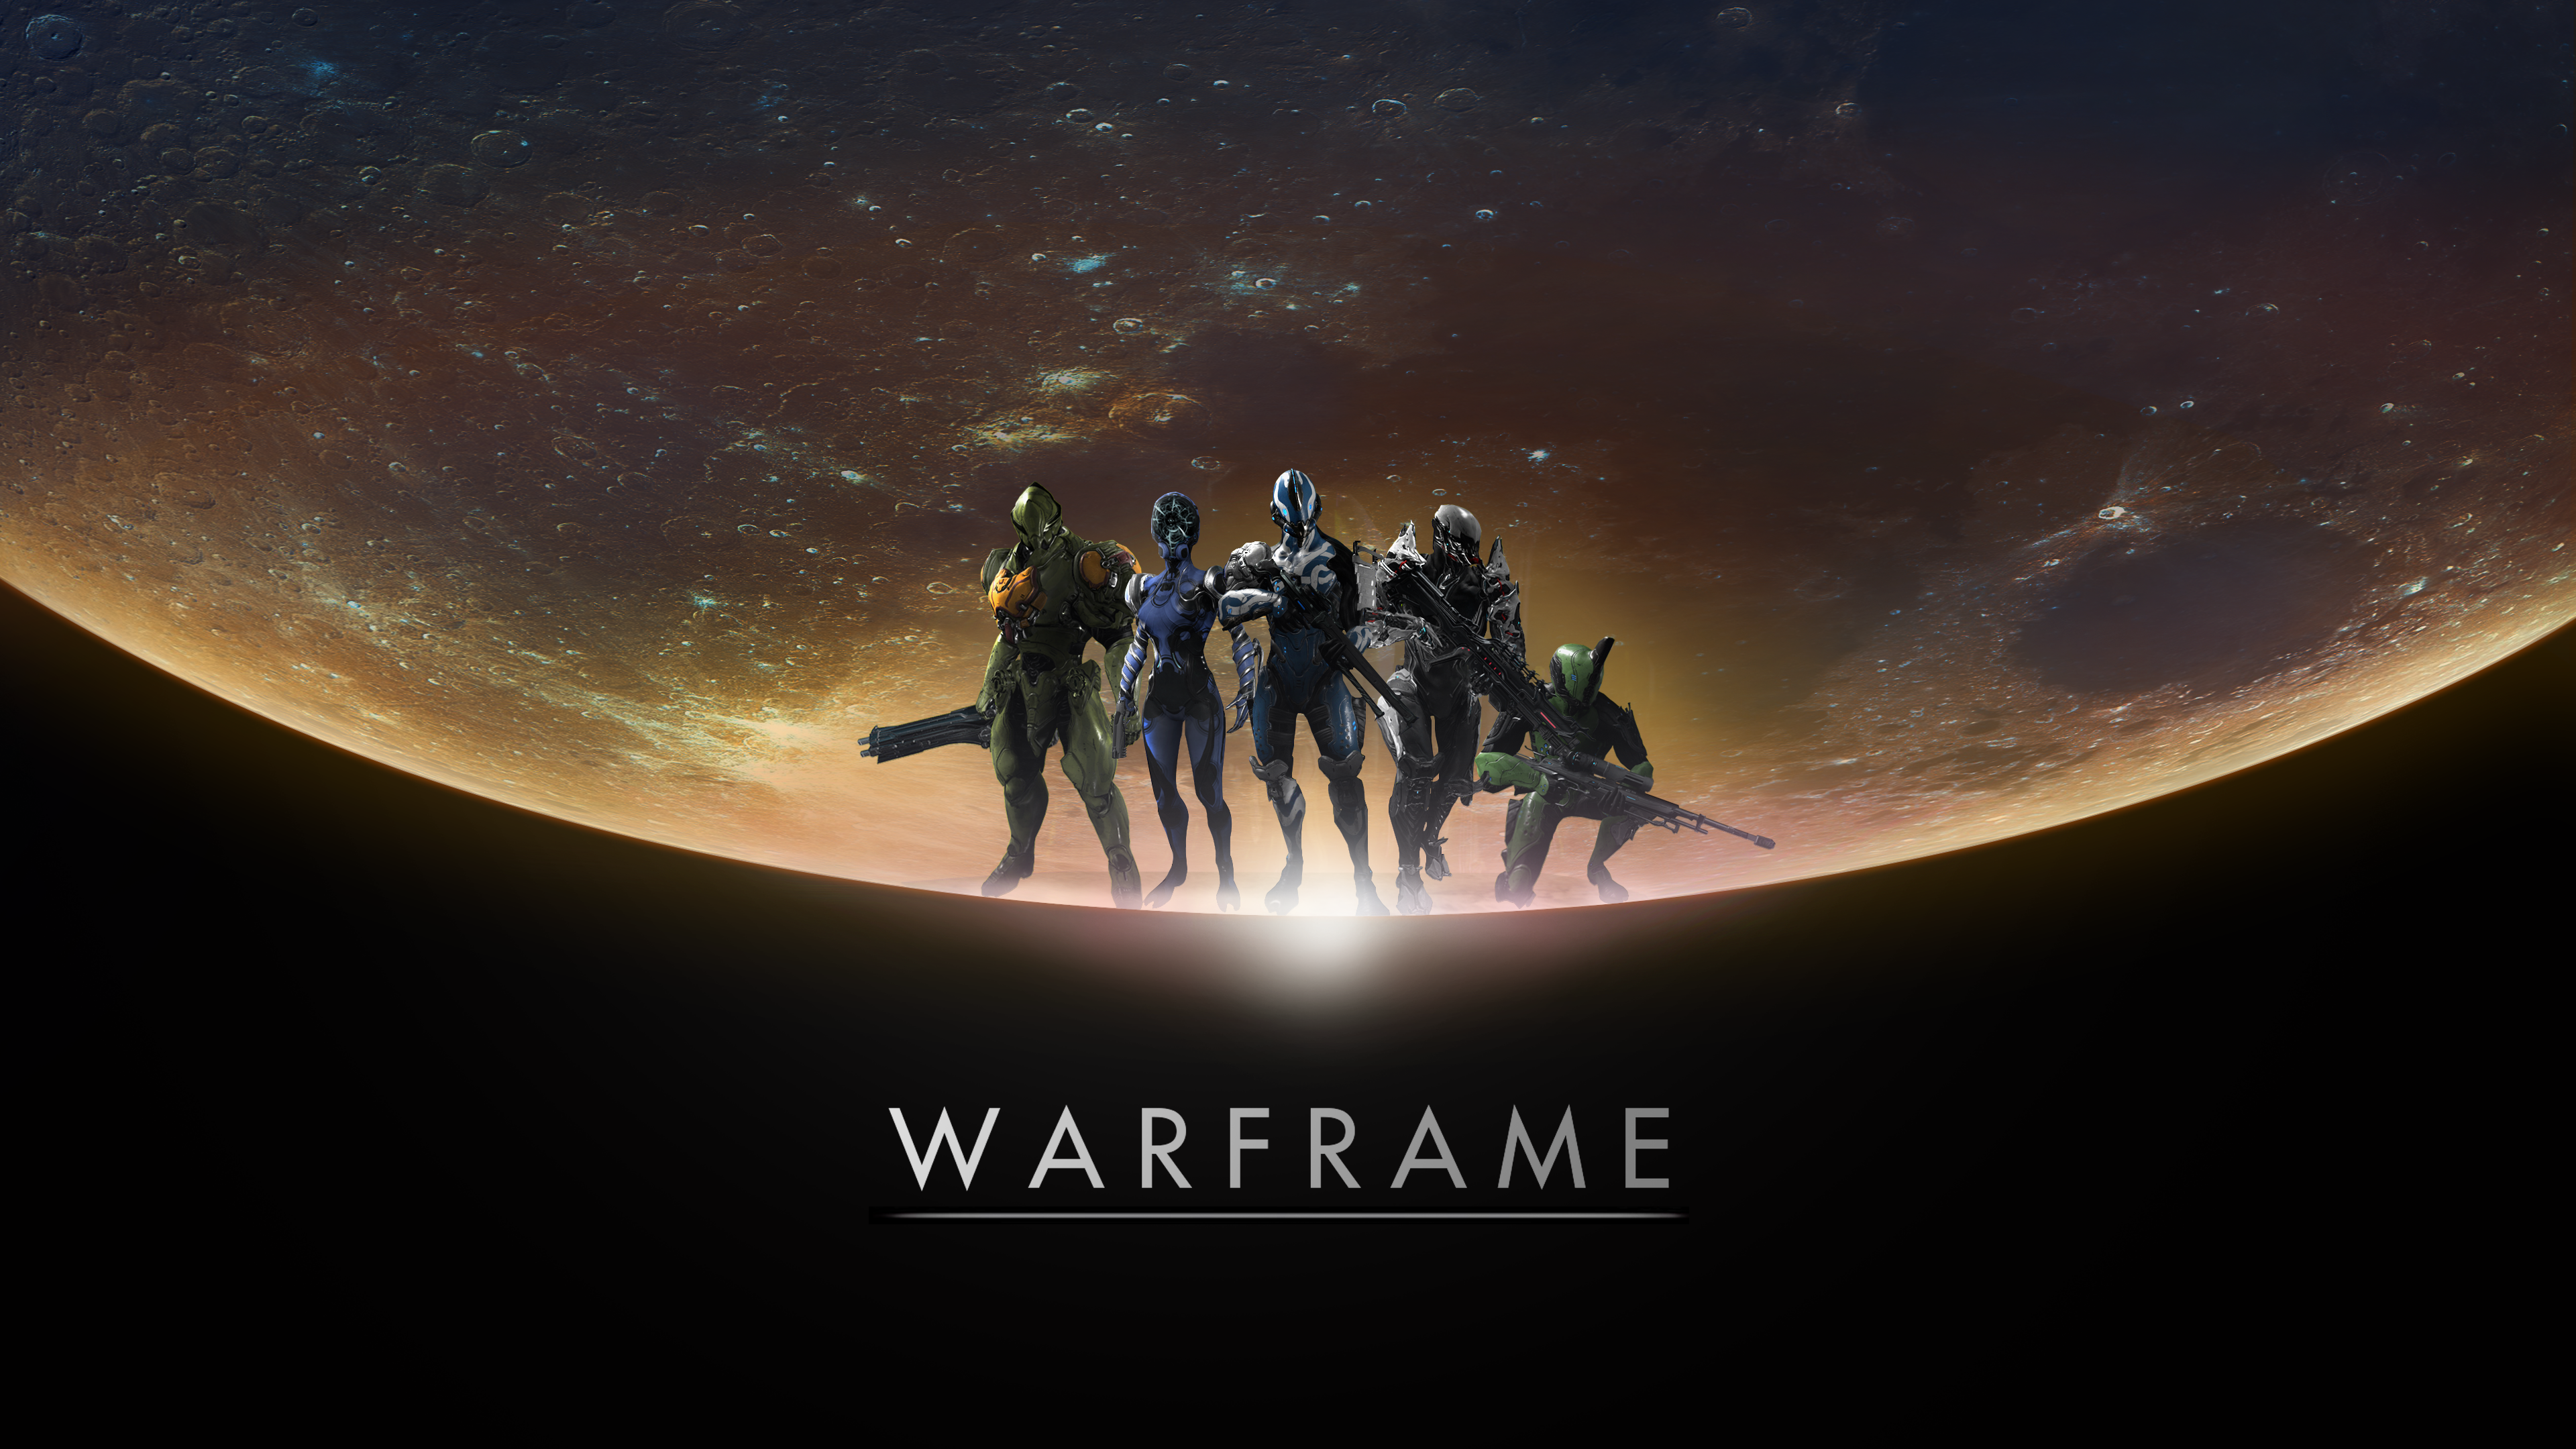 Warframe Wallpaper 4k   3840x2160   Download HD Wallpaper 3840x2160